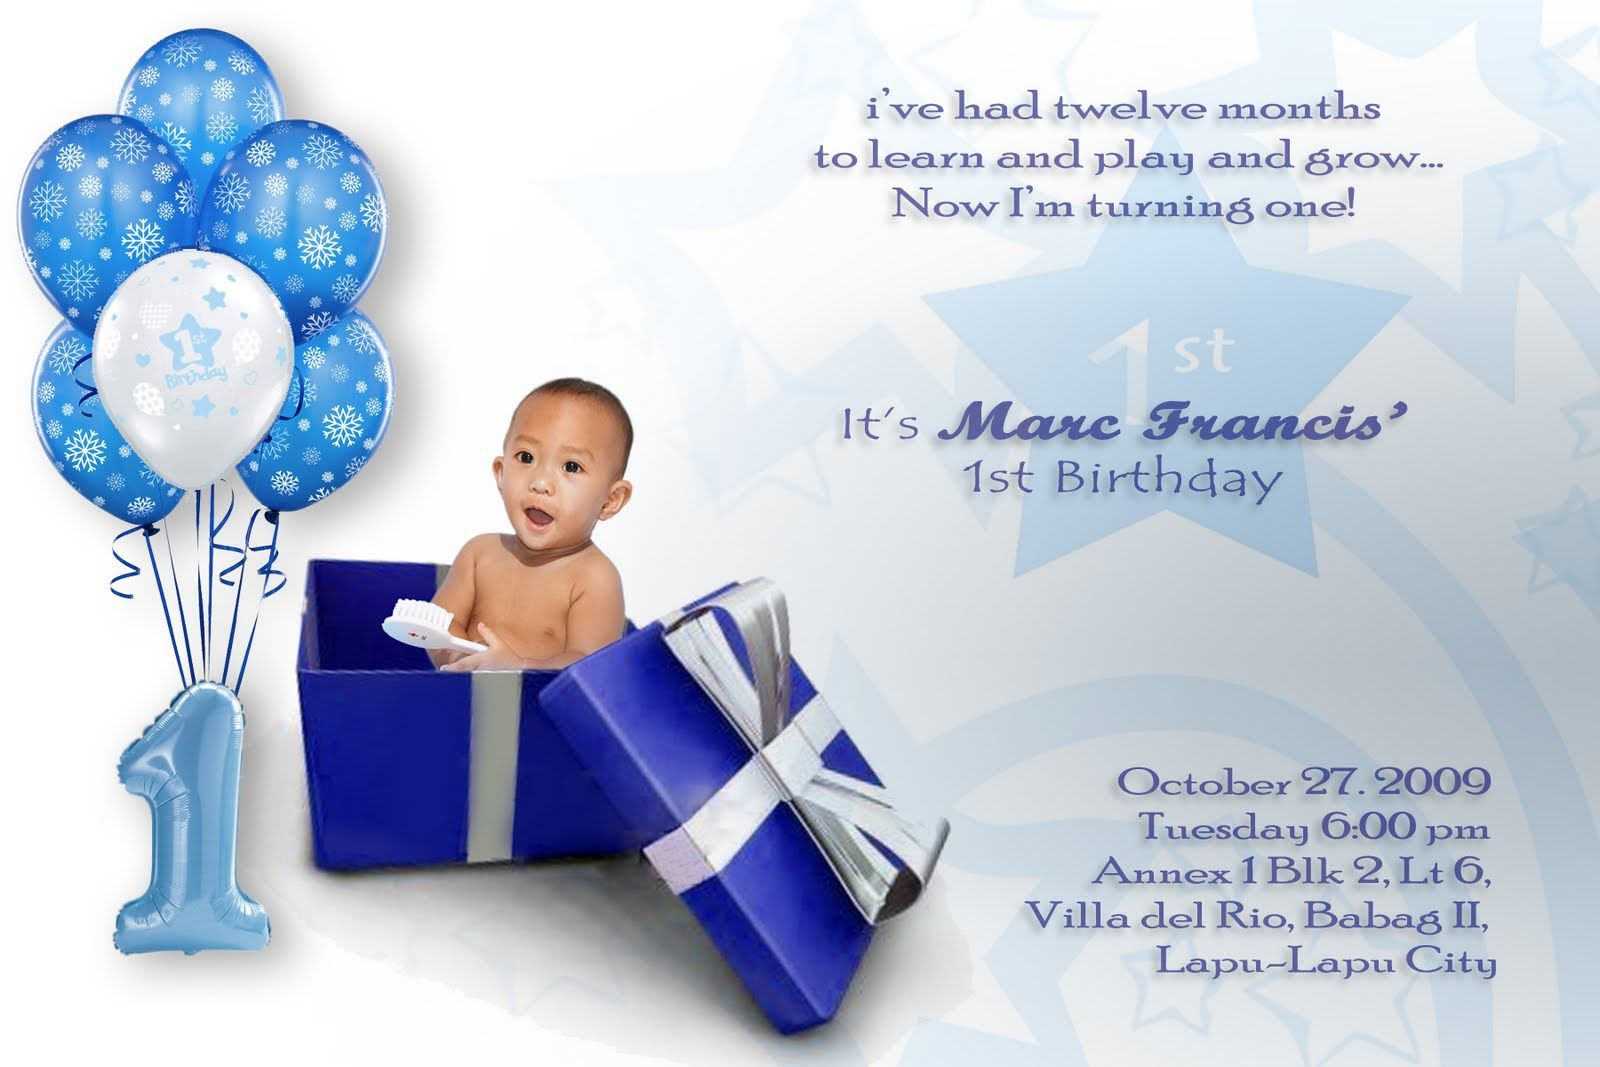 Birthday Invitation Cards For Boys Birthday Invitation Cards For